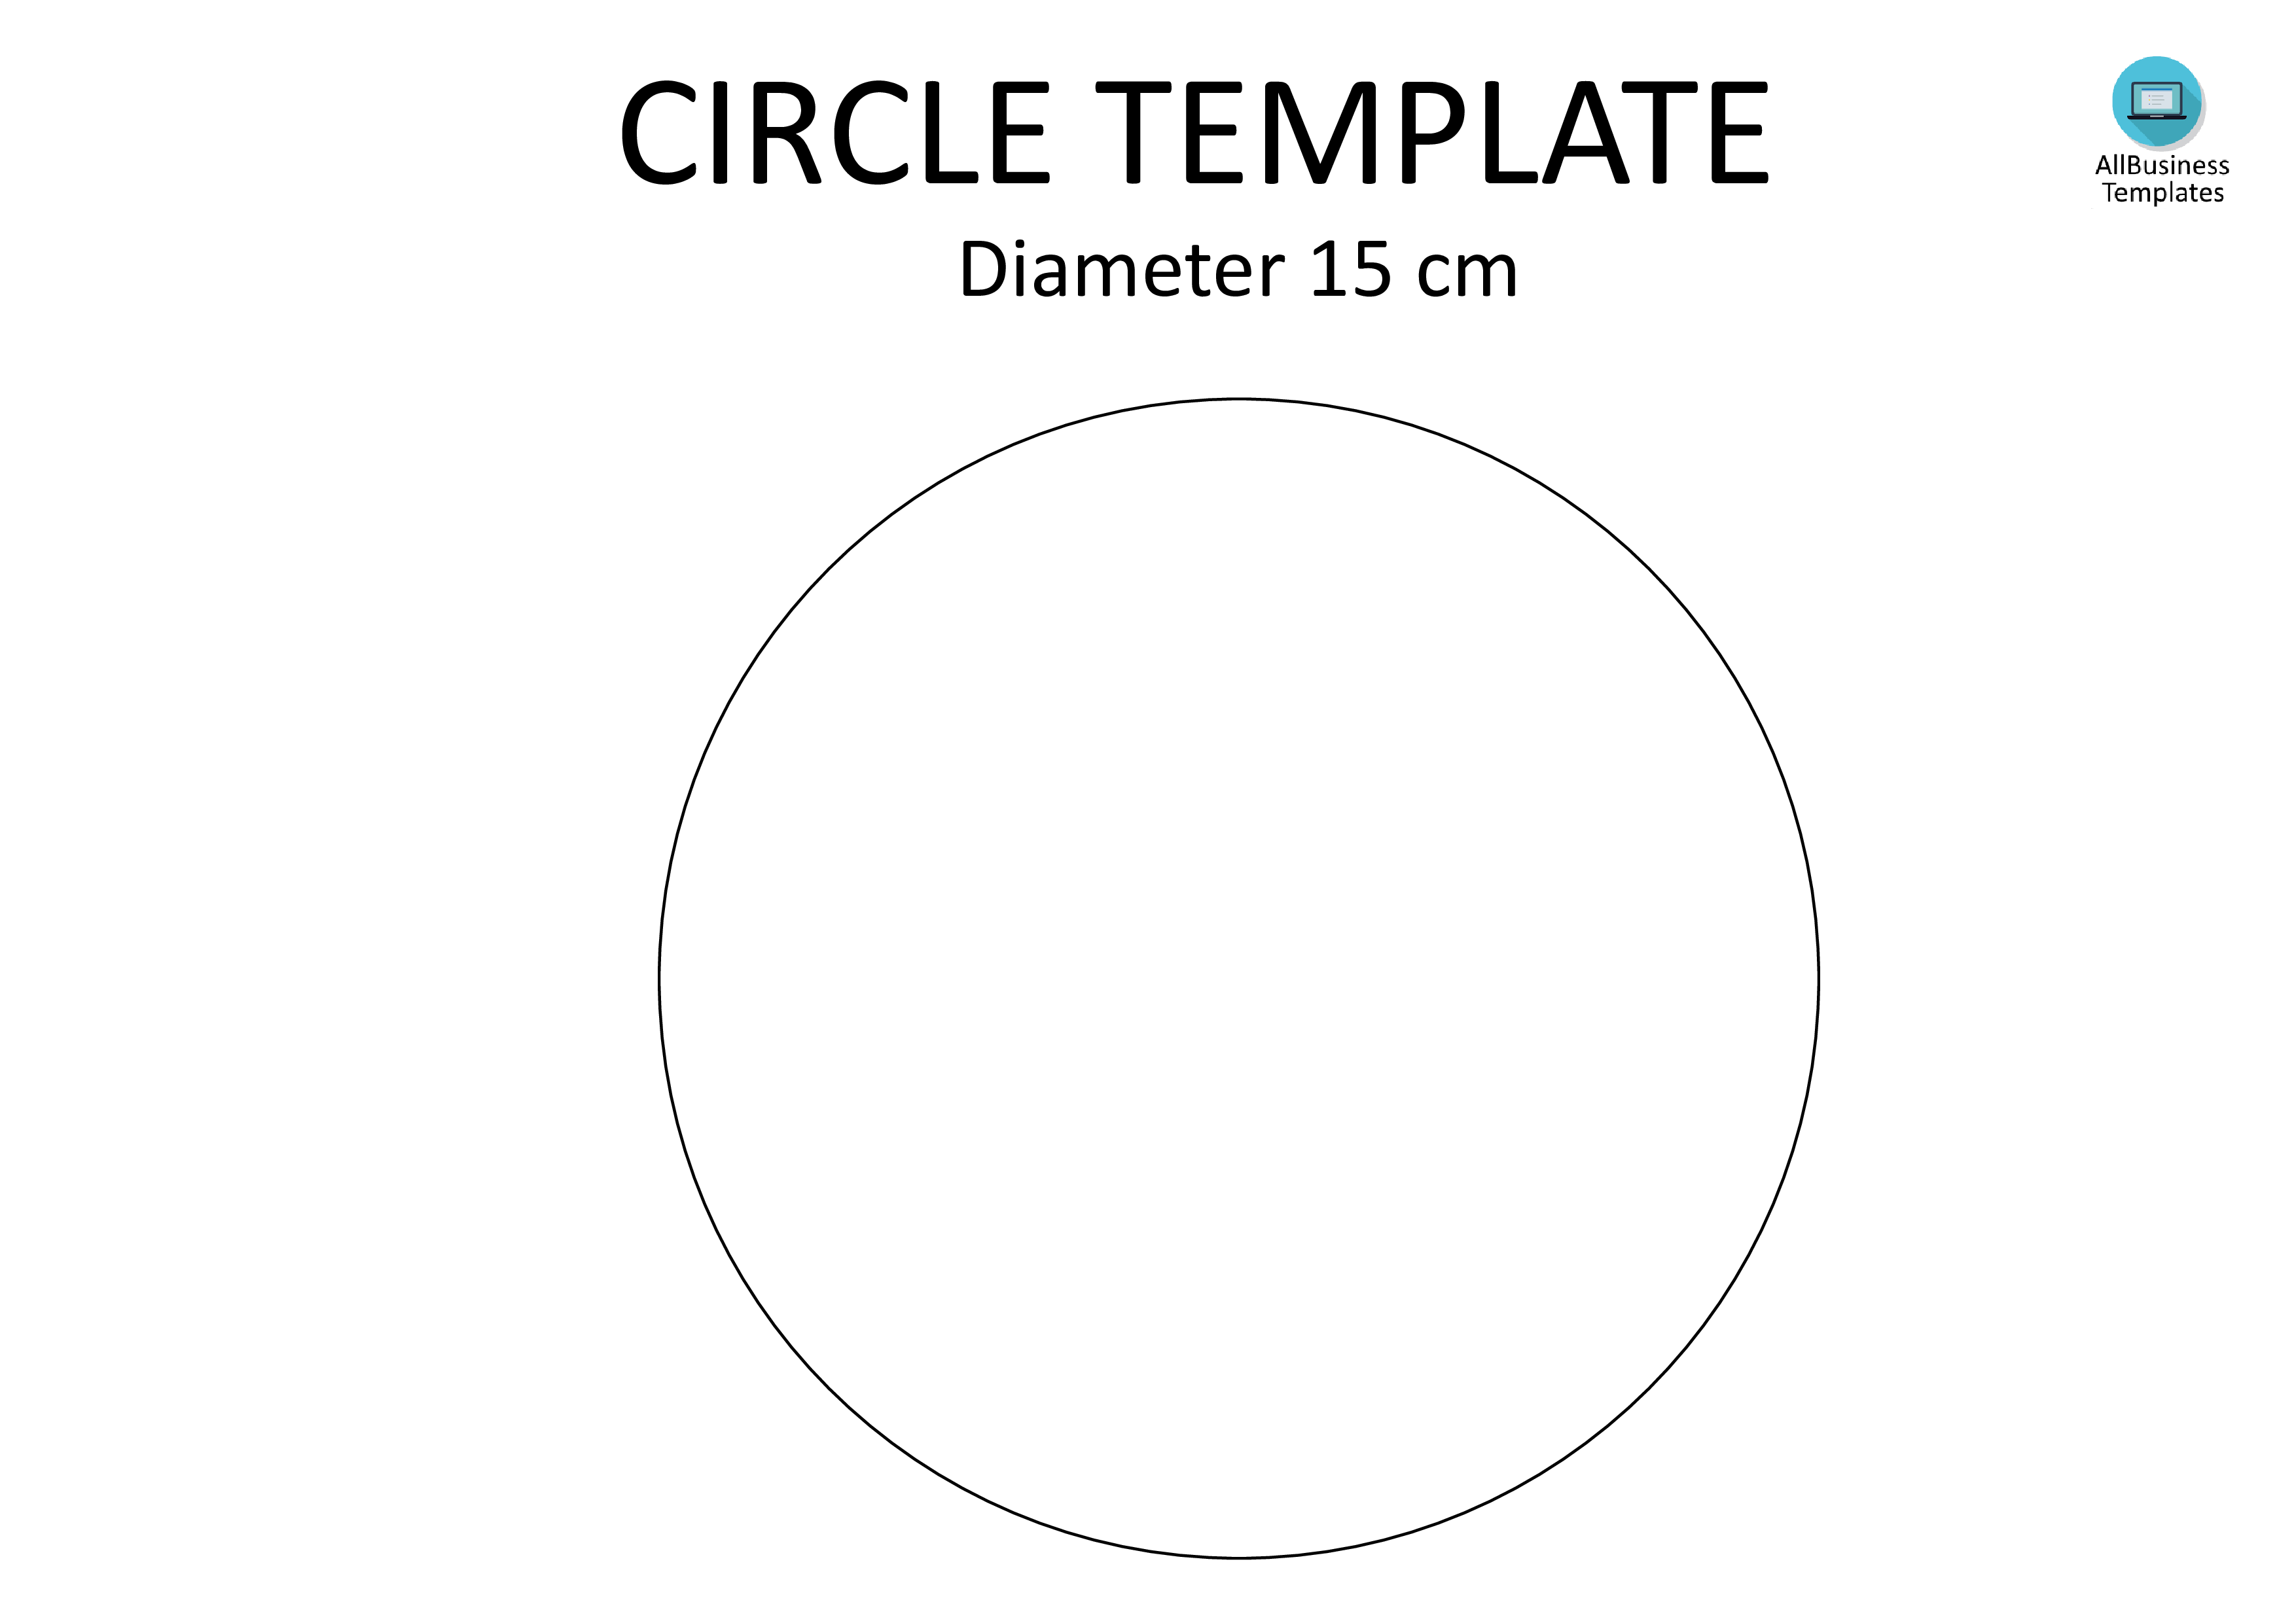 Circle Template A Diameter Cm  Do You Need A  Cm Diameter